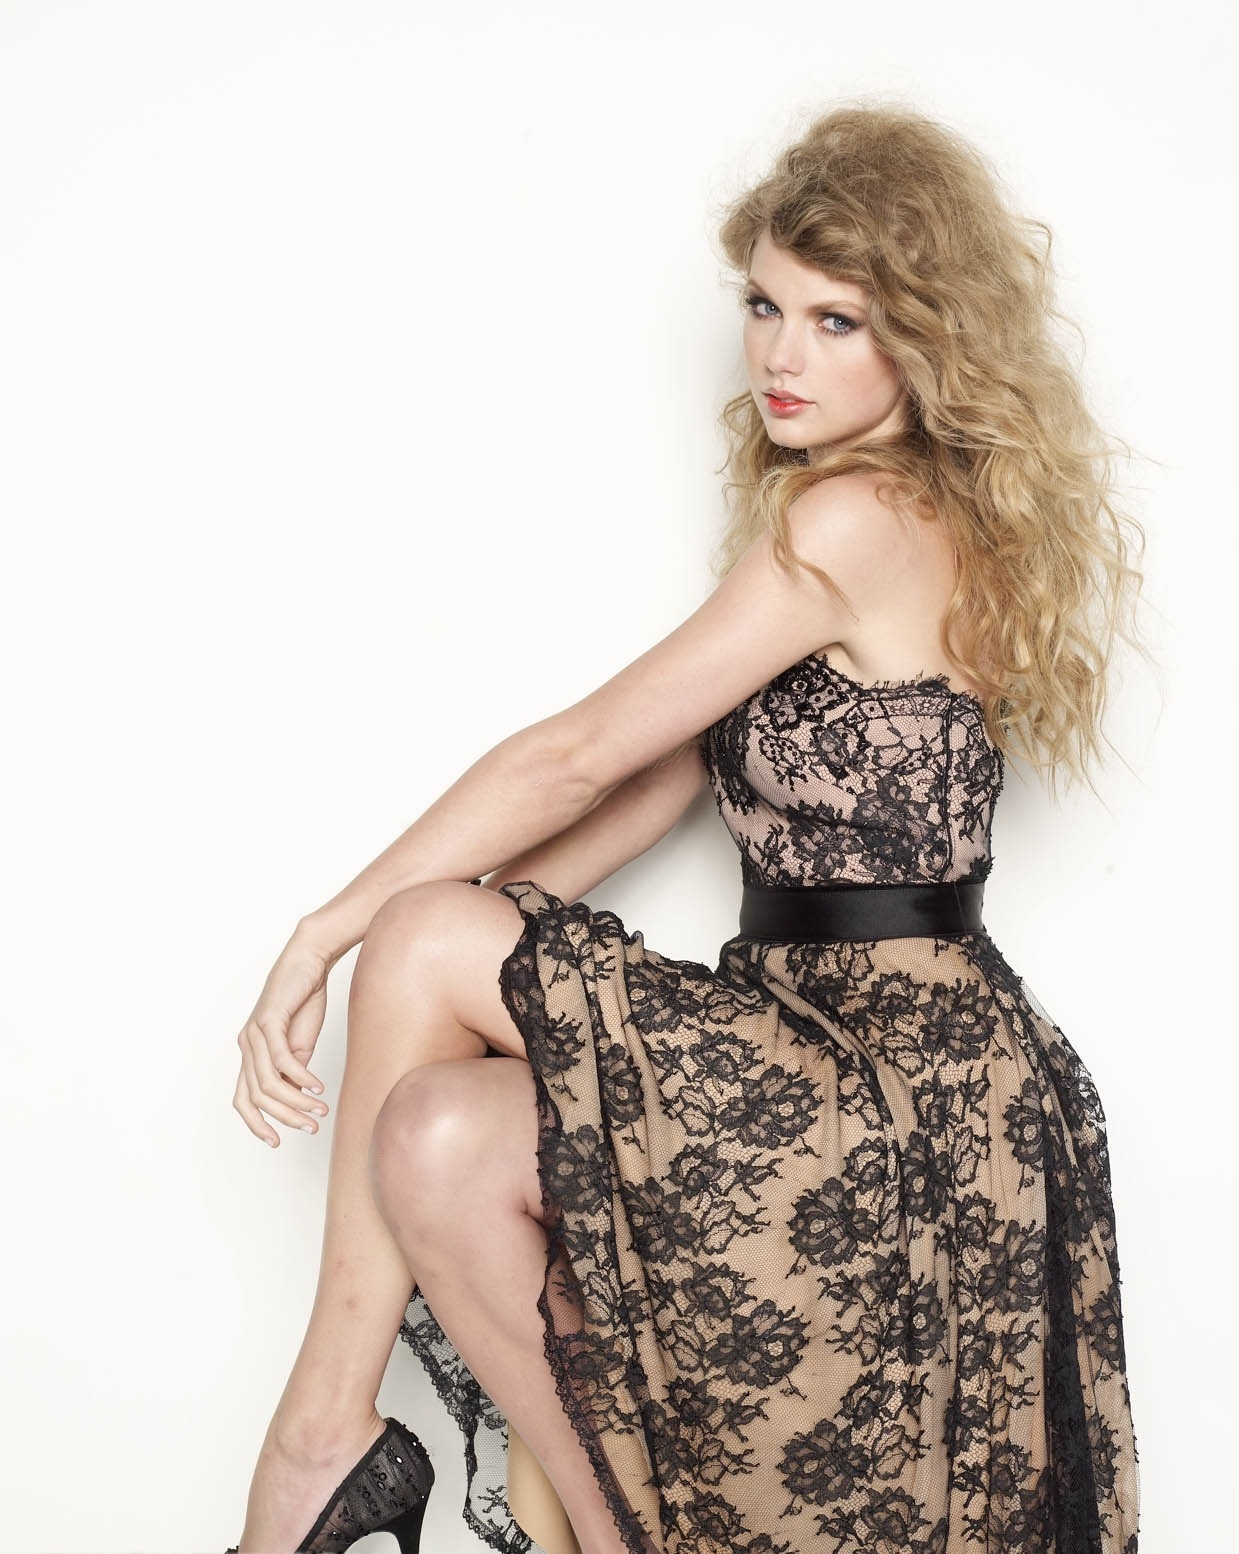 Taylor Swift Topless Outtake From Glamour Photo Shoot Leaked